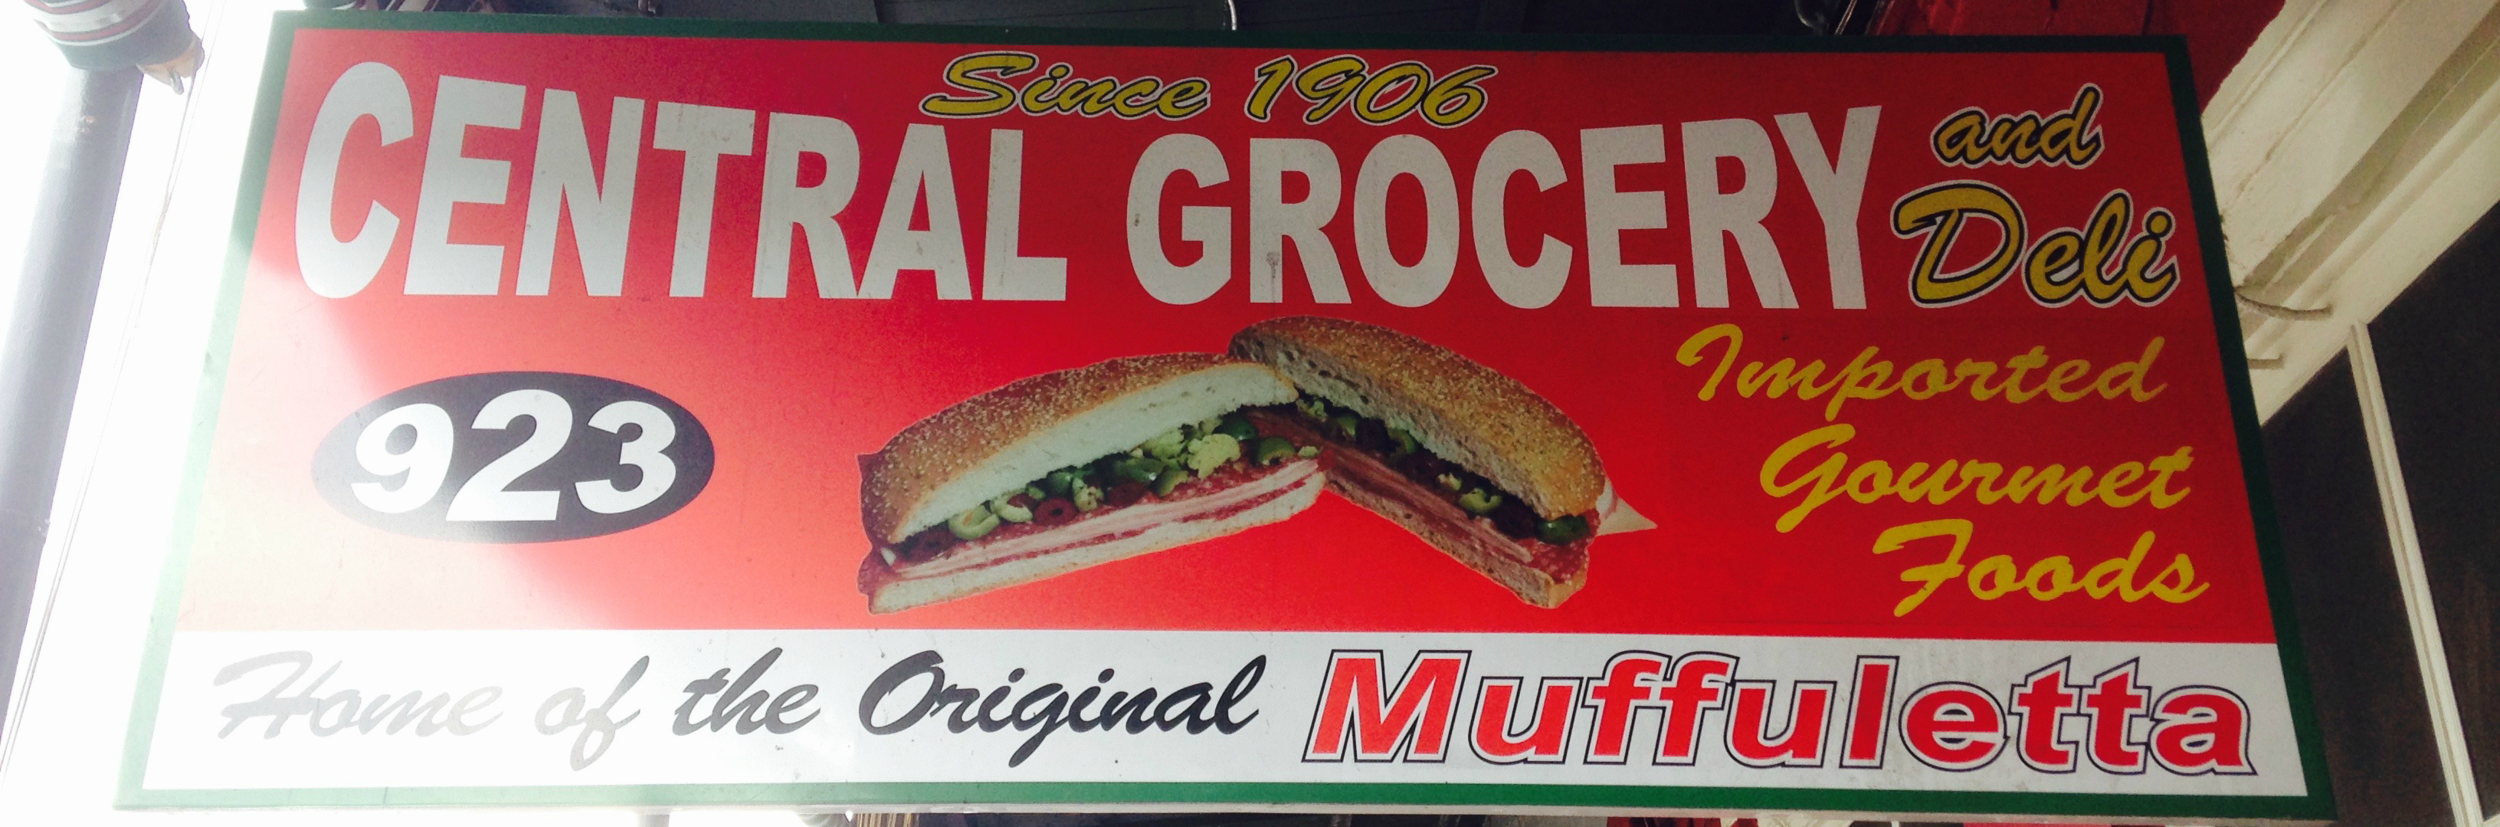 Central Grocery, 923 Decatur St, New Orleans